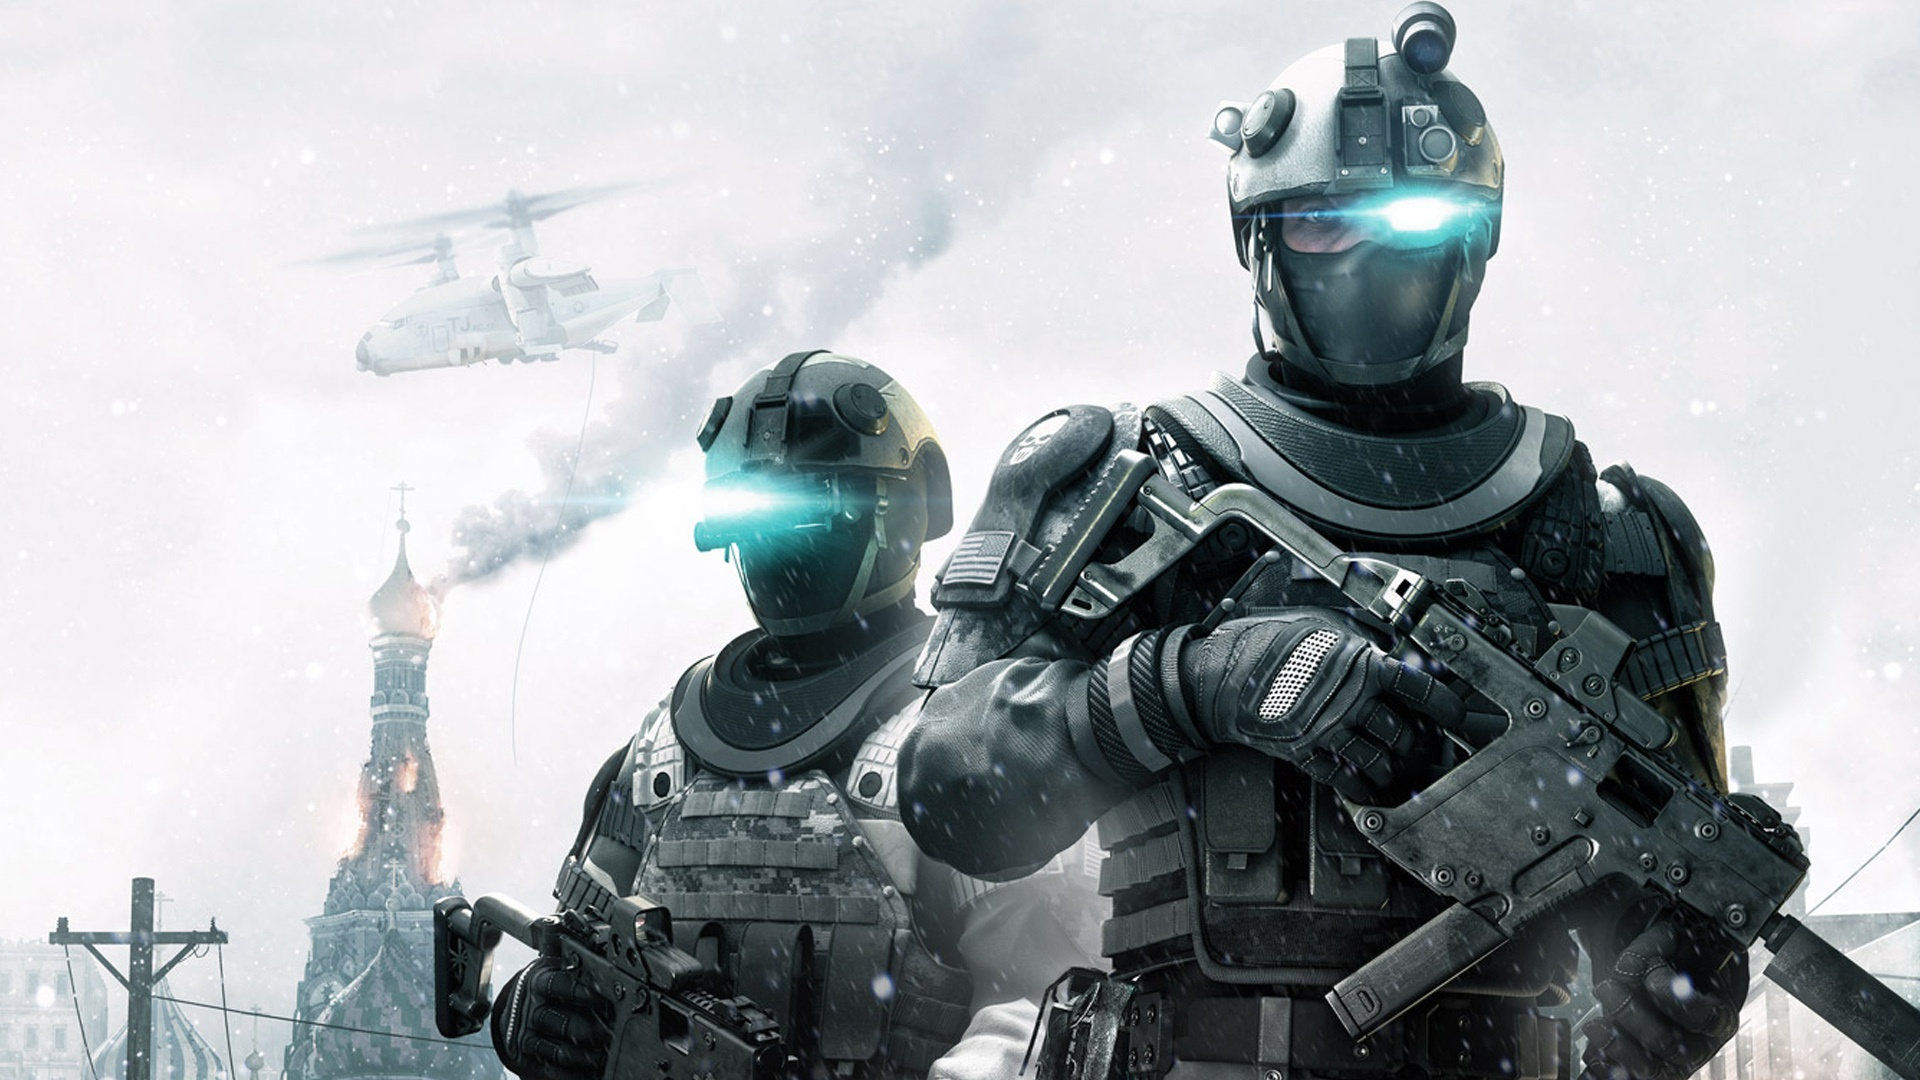 Genetically Modified Humans For A Future Super Soldier Army (Ghost Recon: Future Soldier)